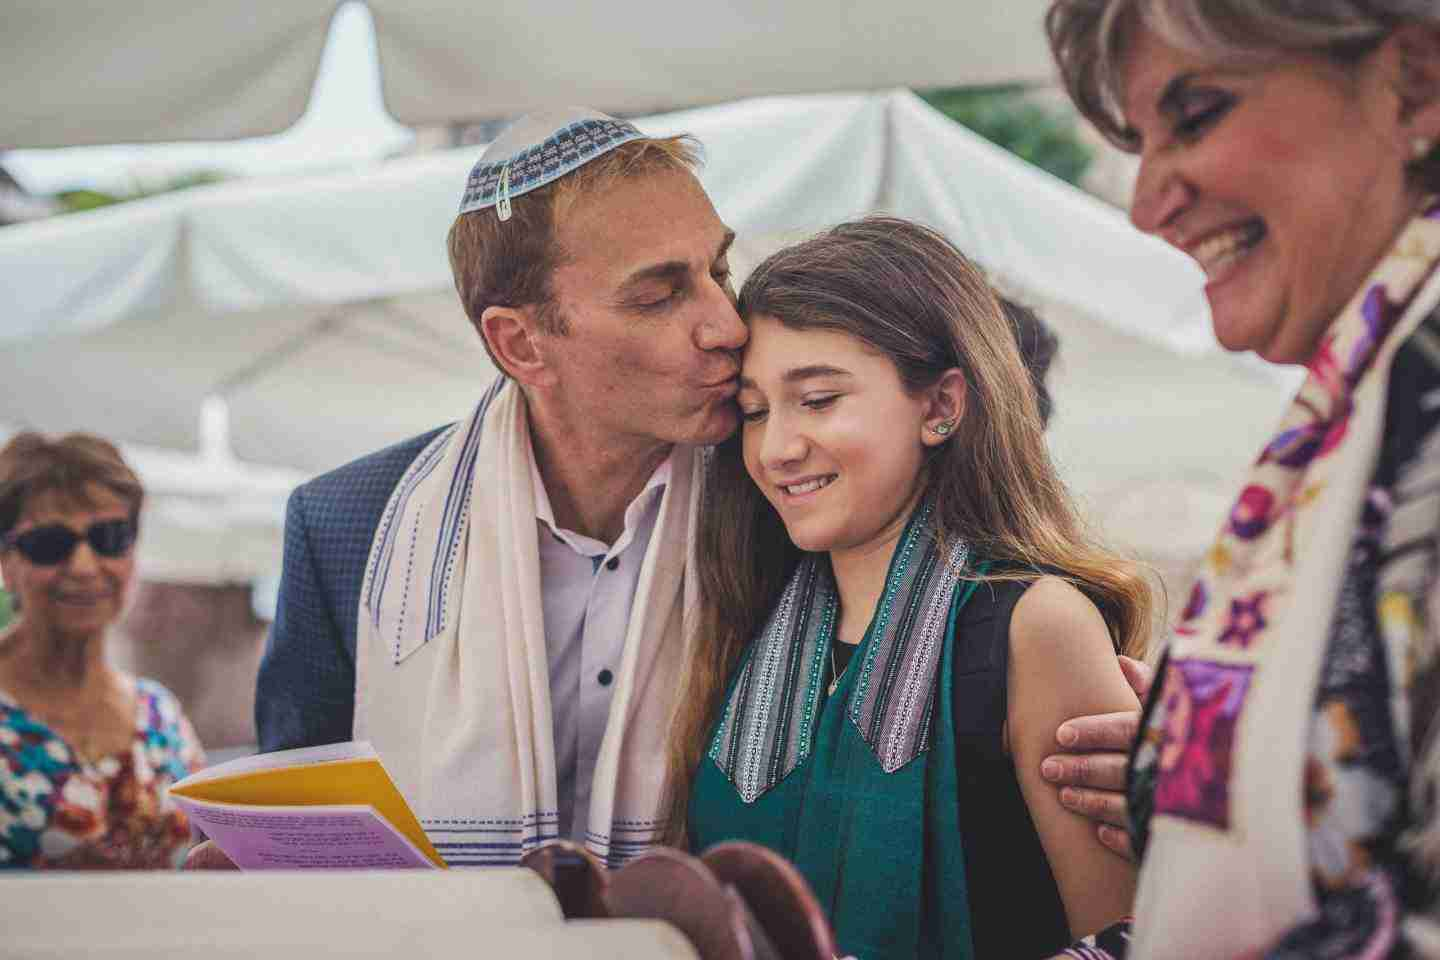 Bat Mitzvah tour in Israel: father kissing daughter at ceremony